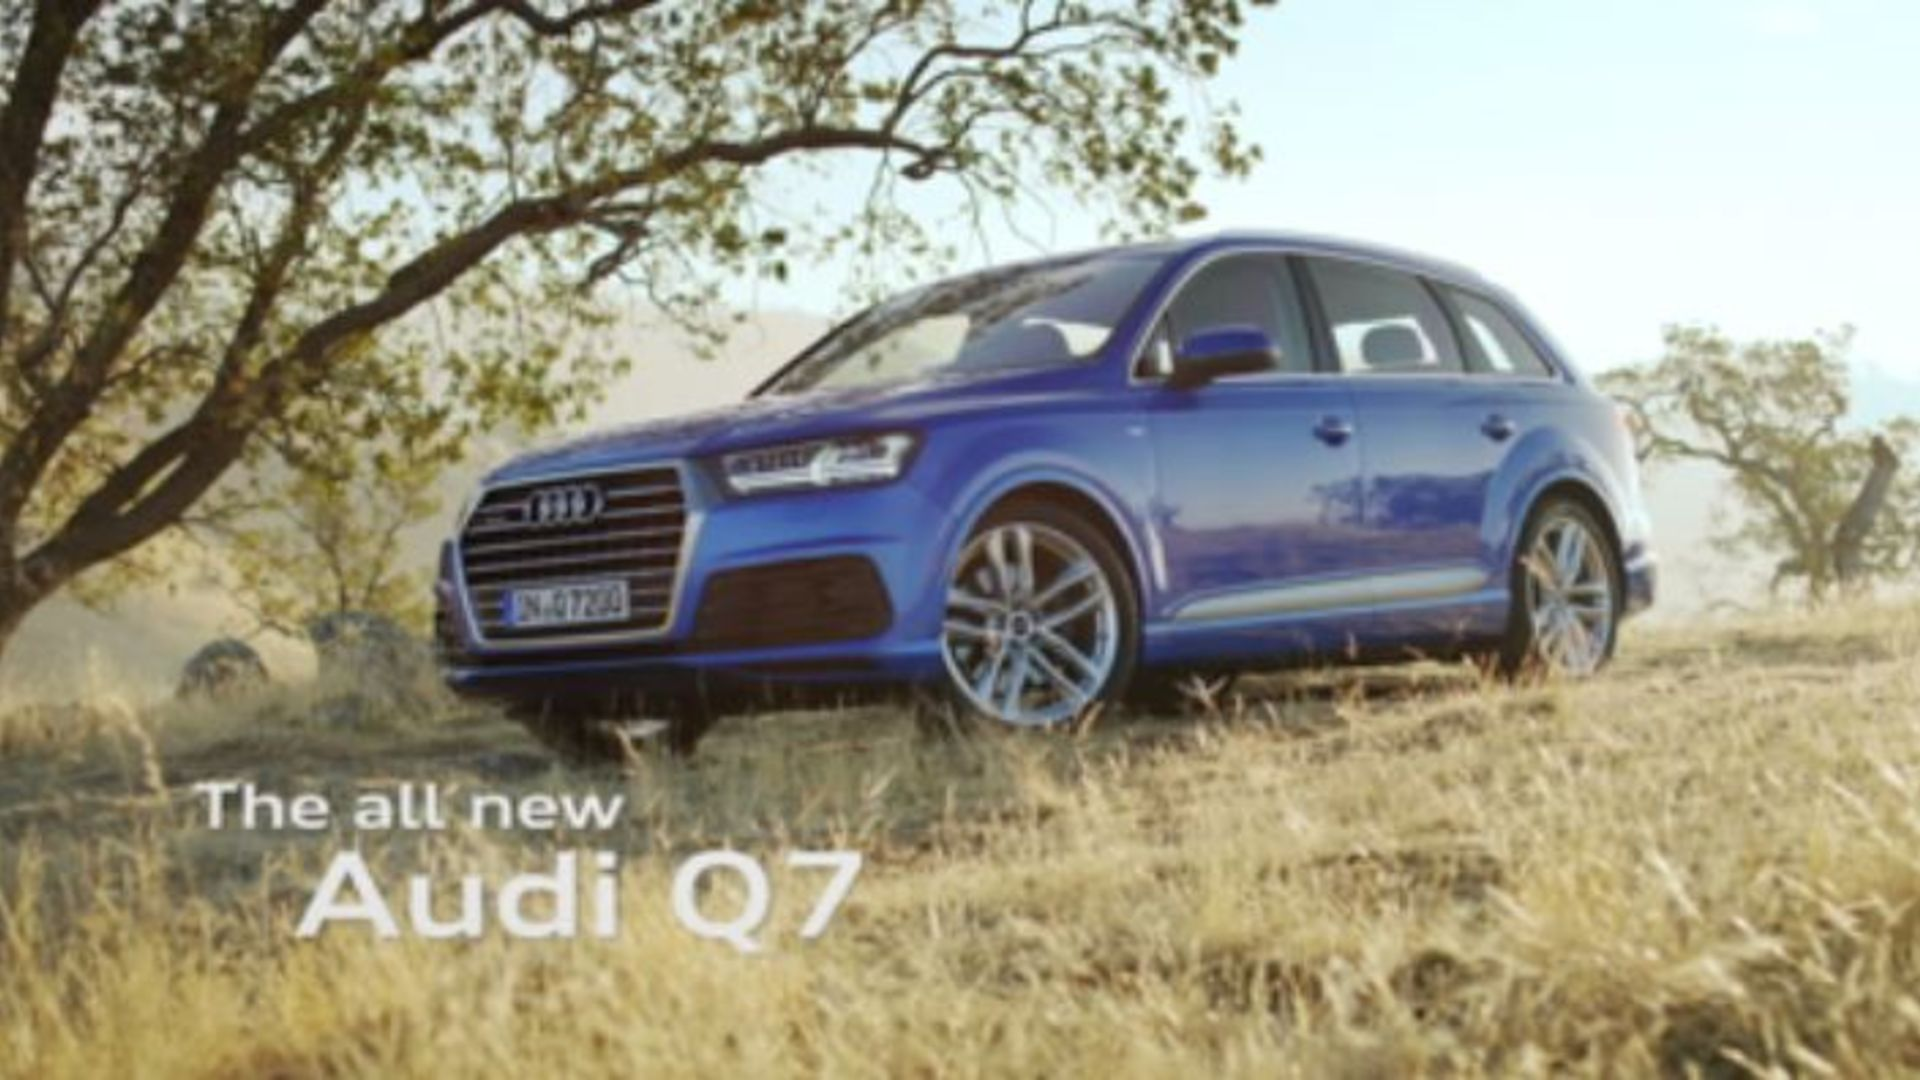 The new Audi Q7 – Sportiness, efficiency, premium comfort